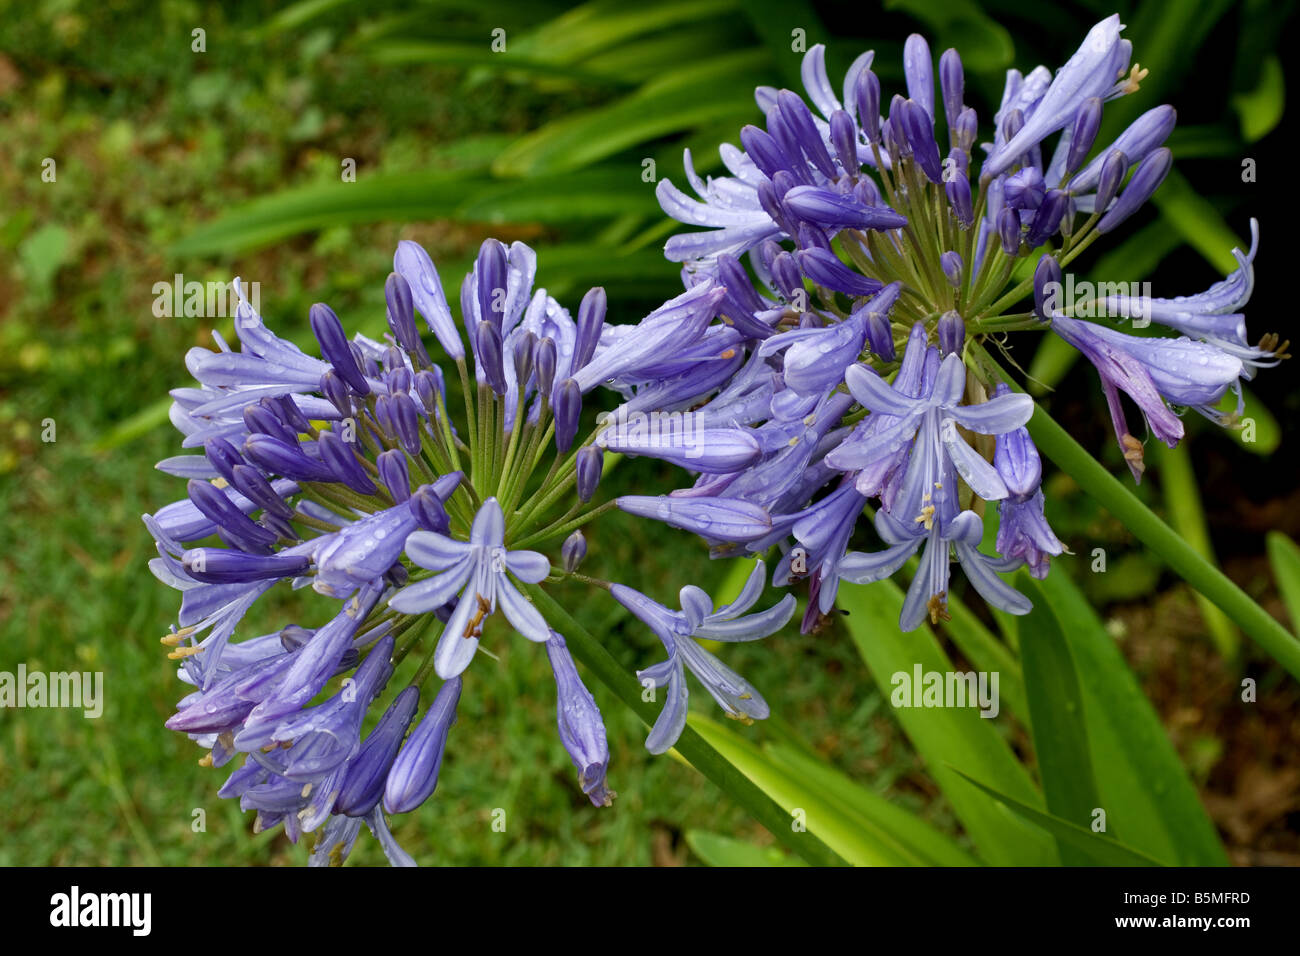 Agapanthus plant in bloom - Stock Image